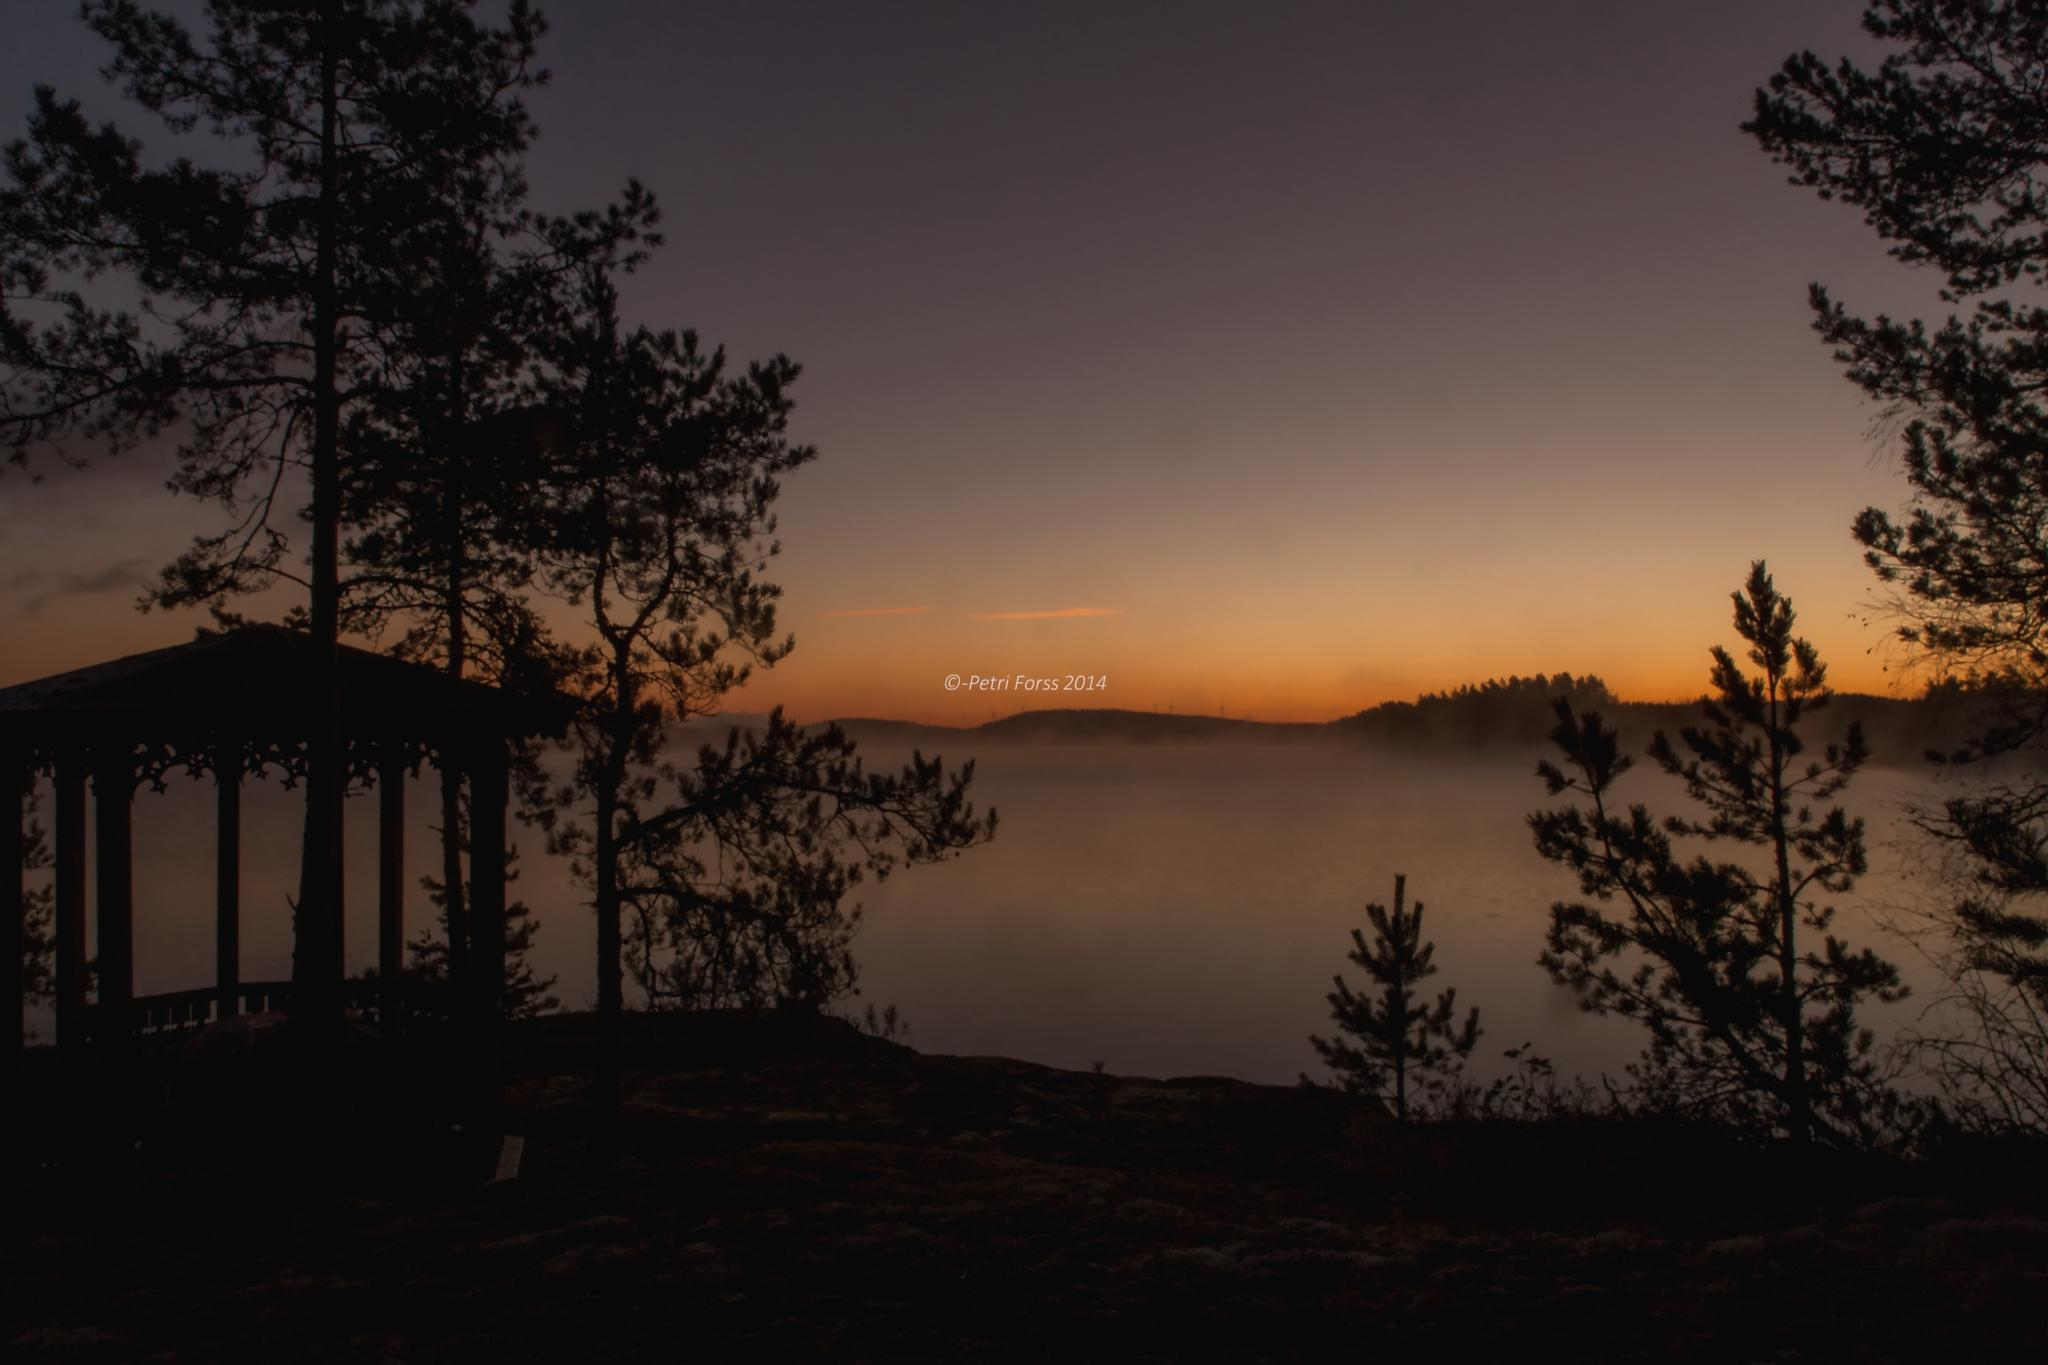 When the morning dawns by Petri Forss